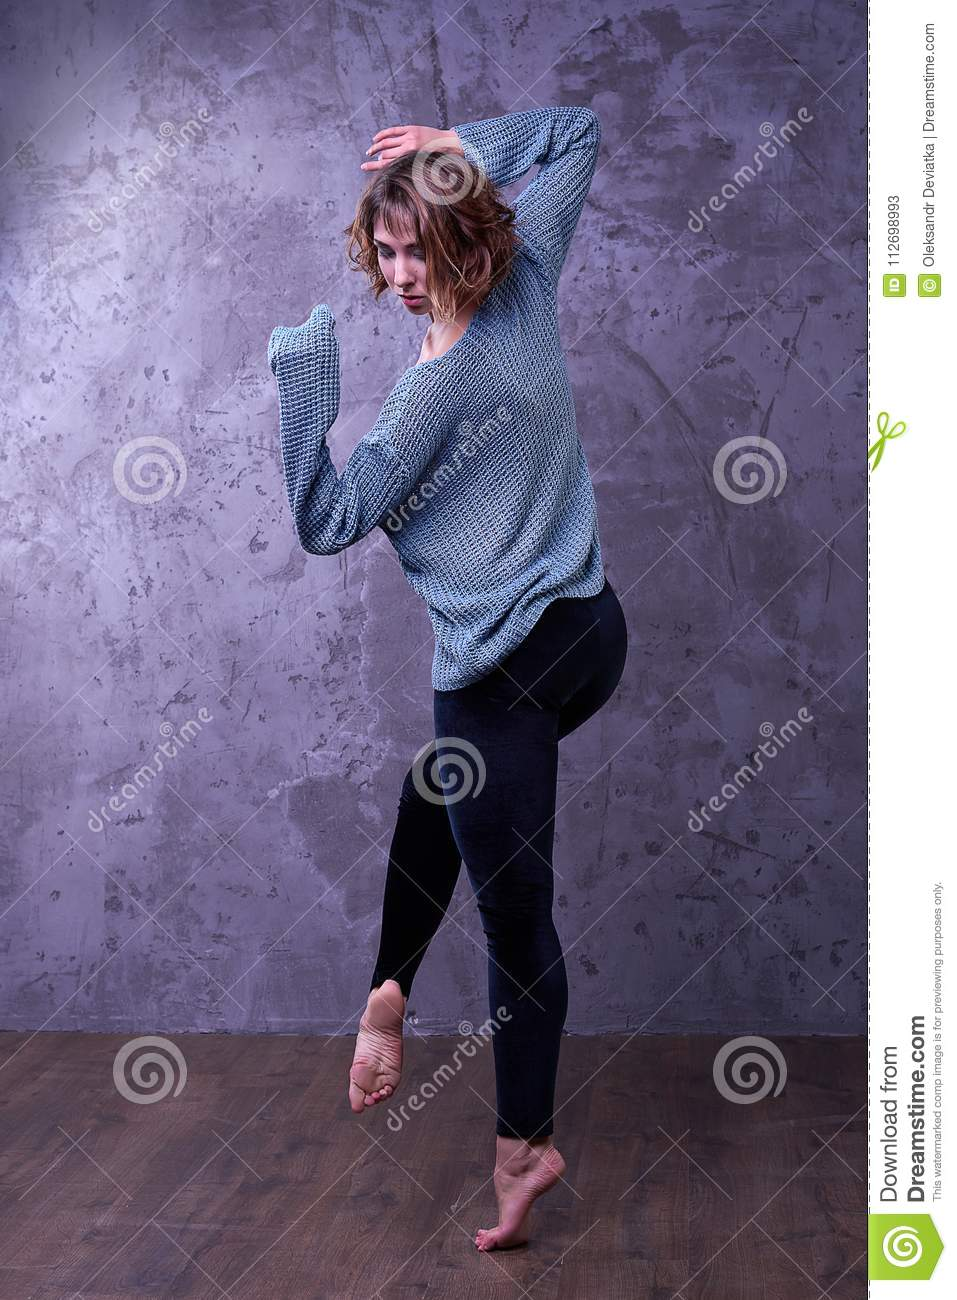 Beautiful girl dancer awesome dance posing on gray background